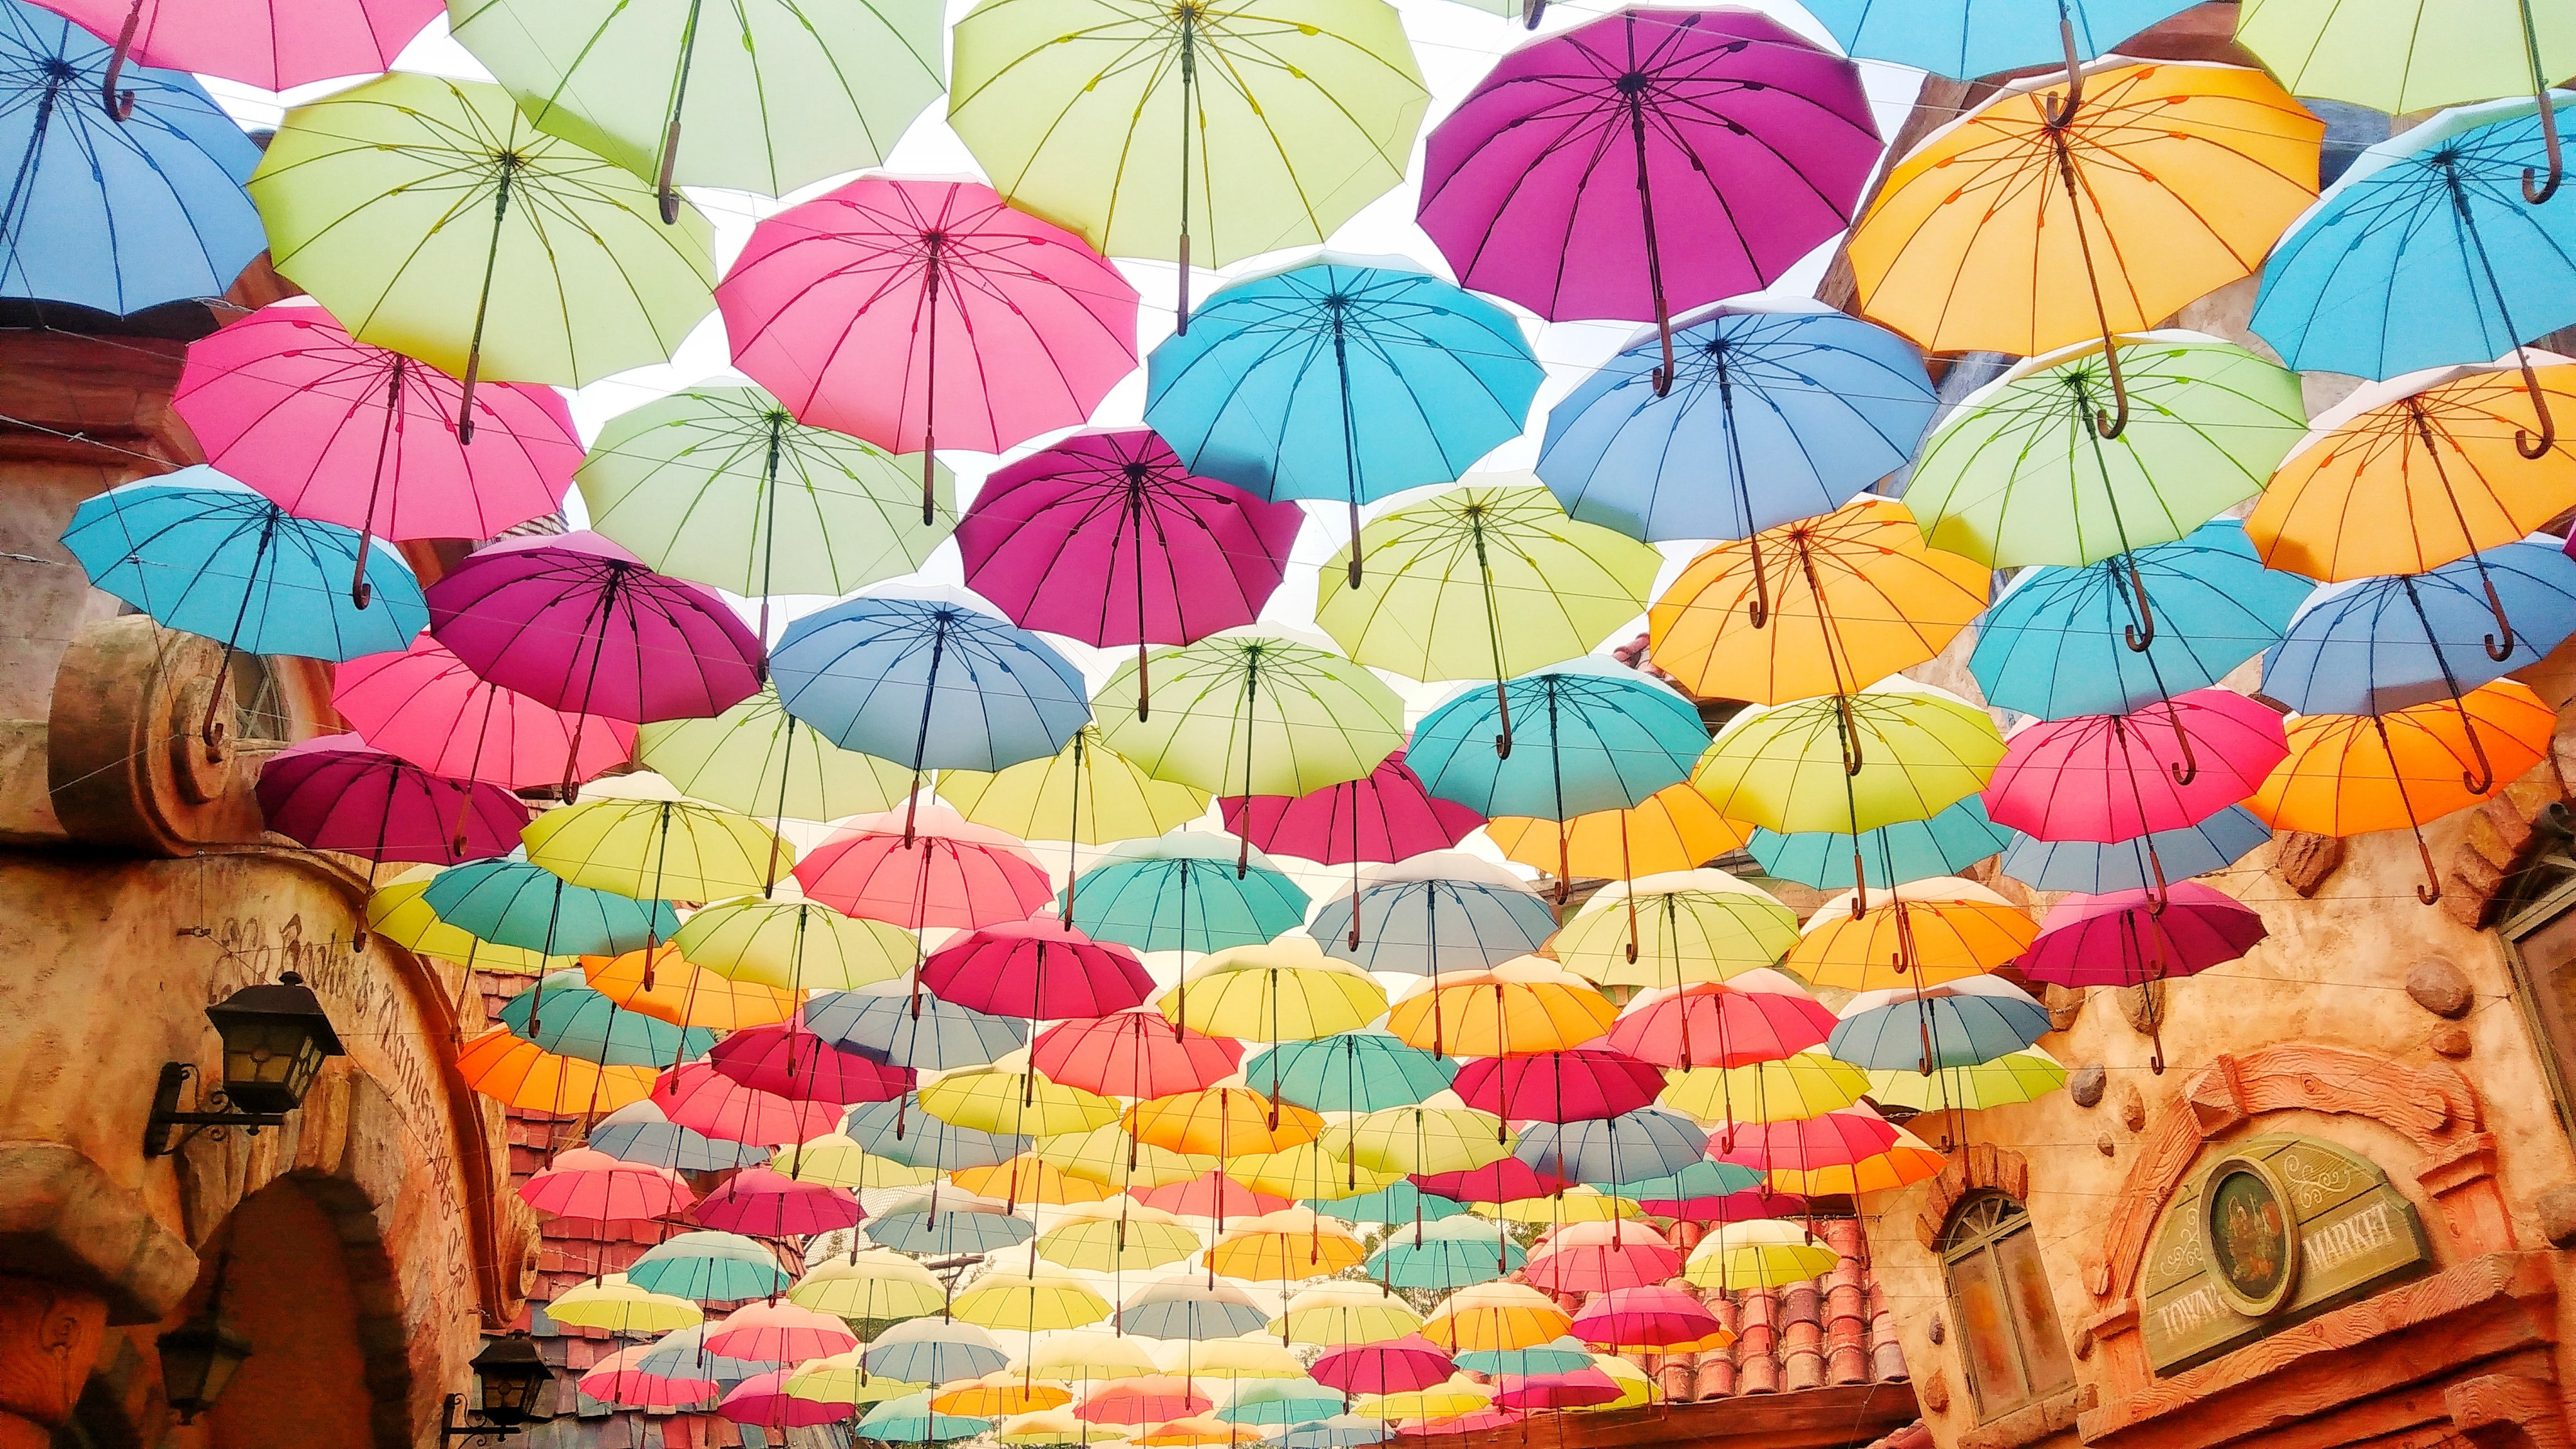 Lots of colorful umbrellas